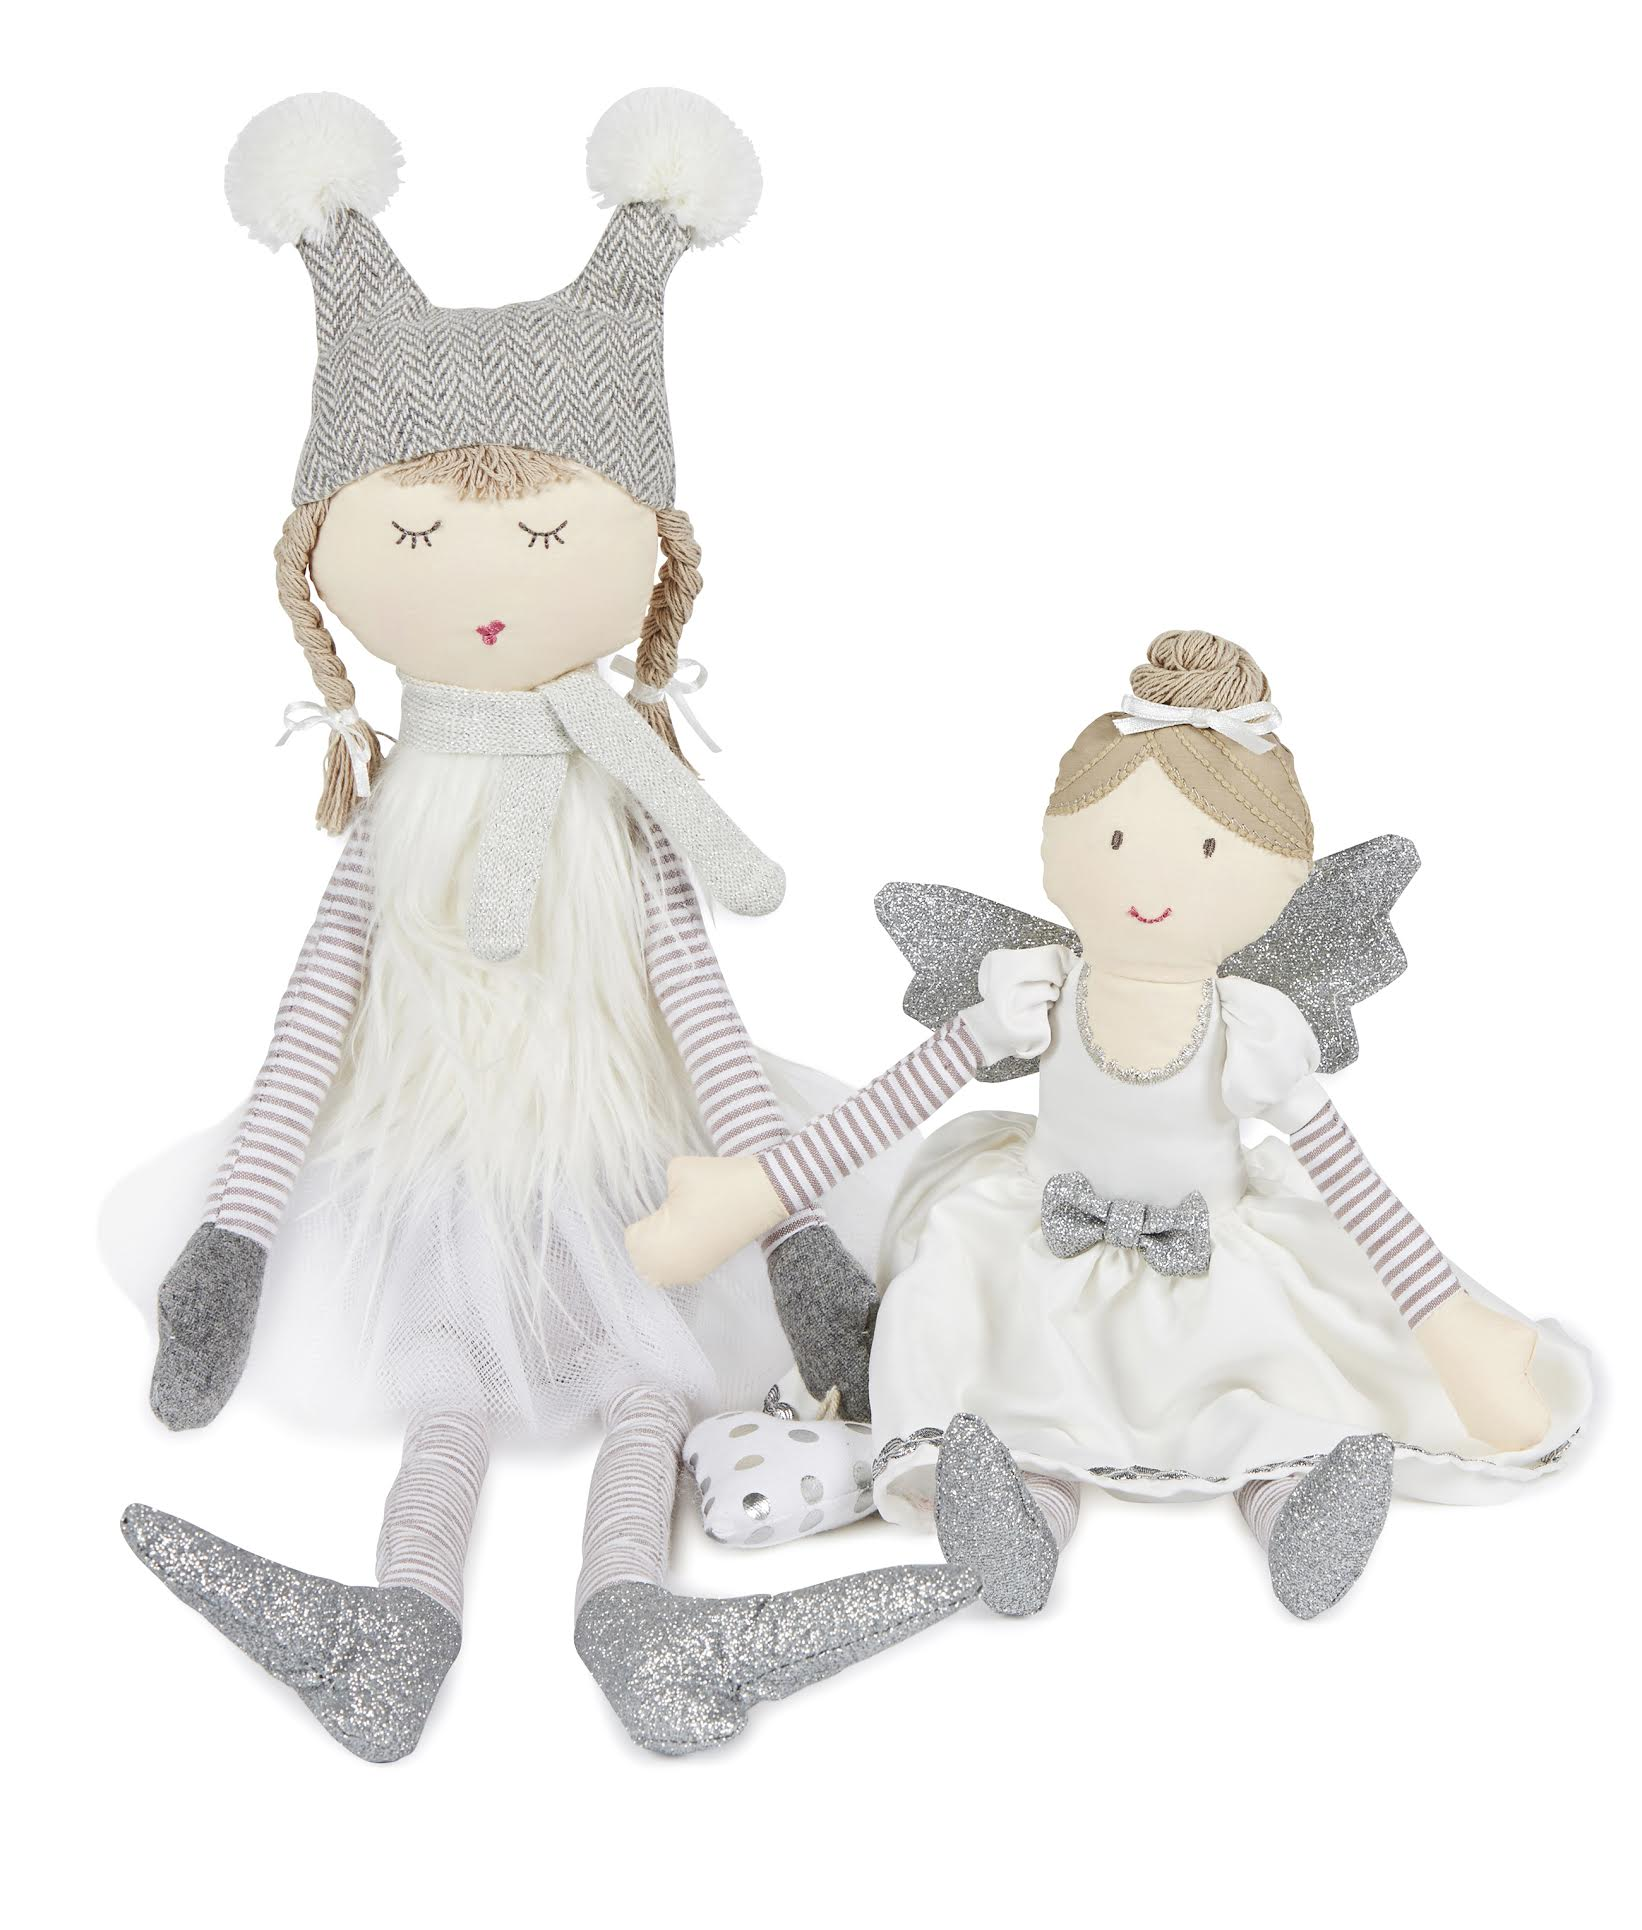 Nana Huchy Bubble Fairy $42 and Sparkles Fairy $32 - makes wishes come true - nanahuchy.com.au